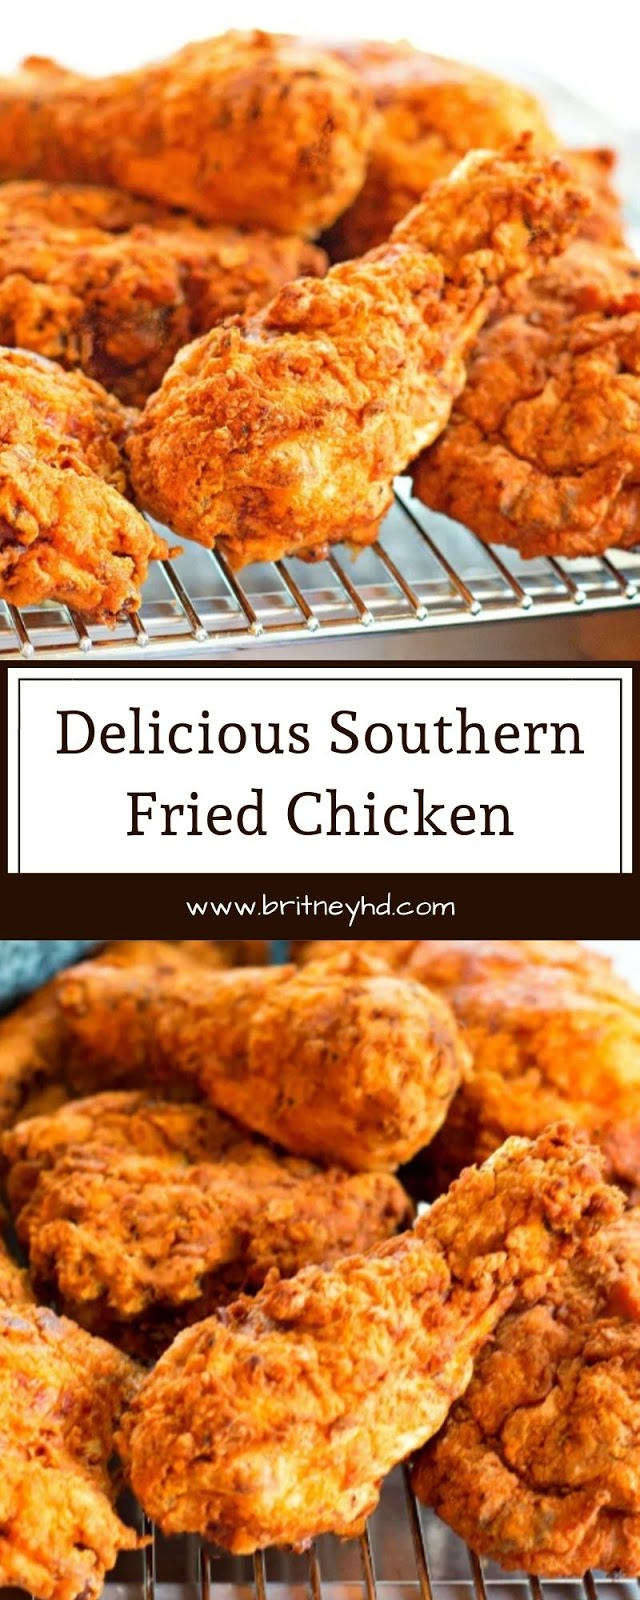 Delicious Southern Fried Chicken